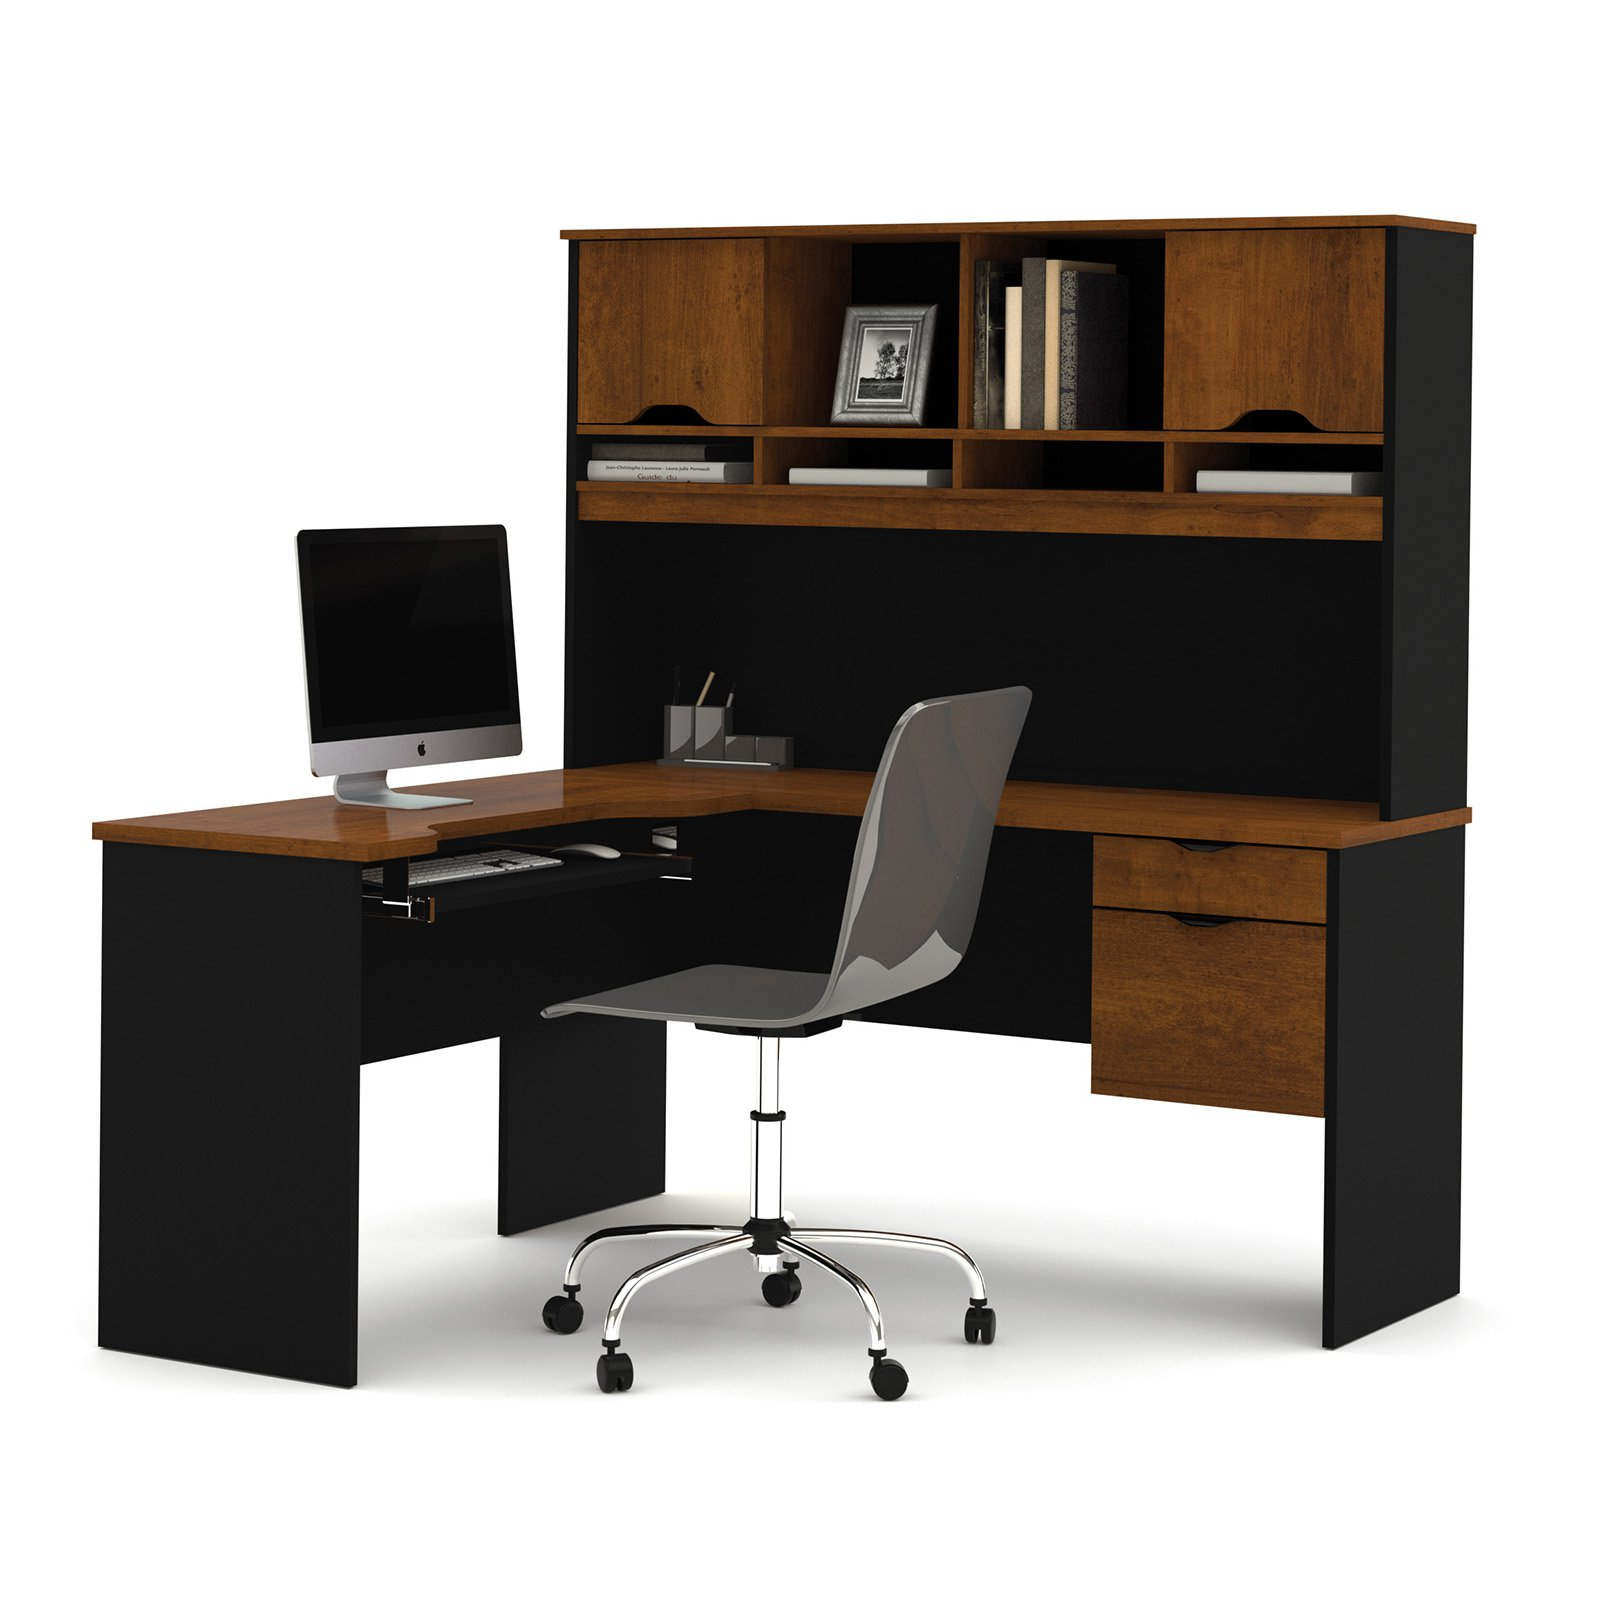 Innova L-shaped desk with accessories in Tuscany Brown & Black